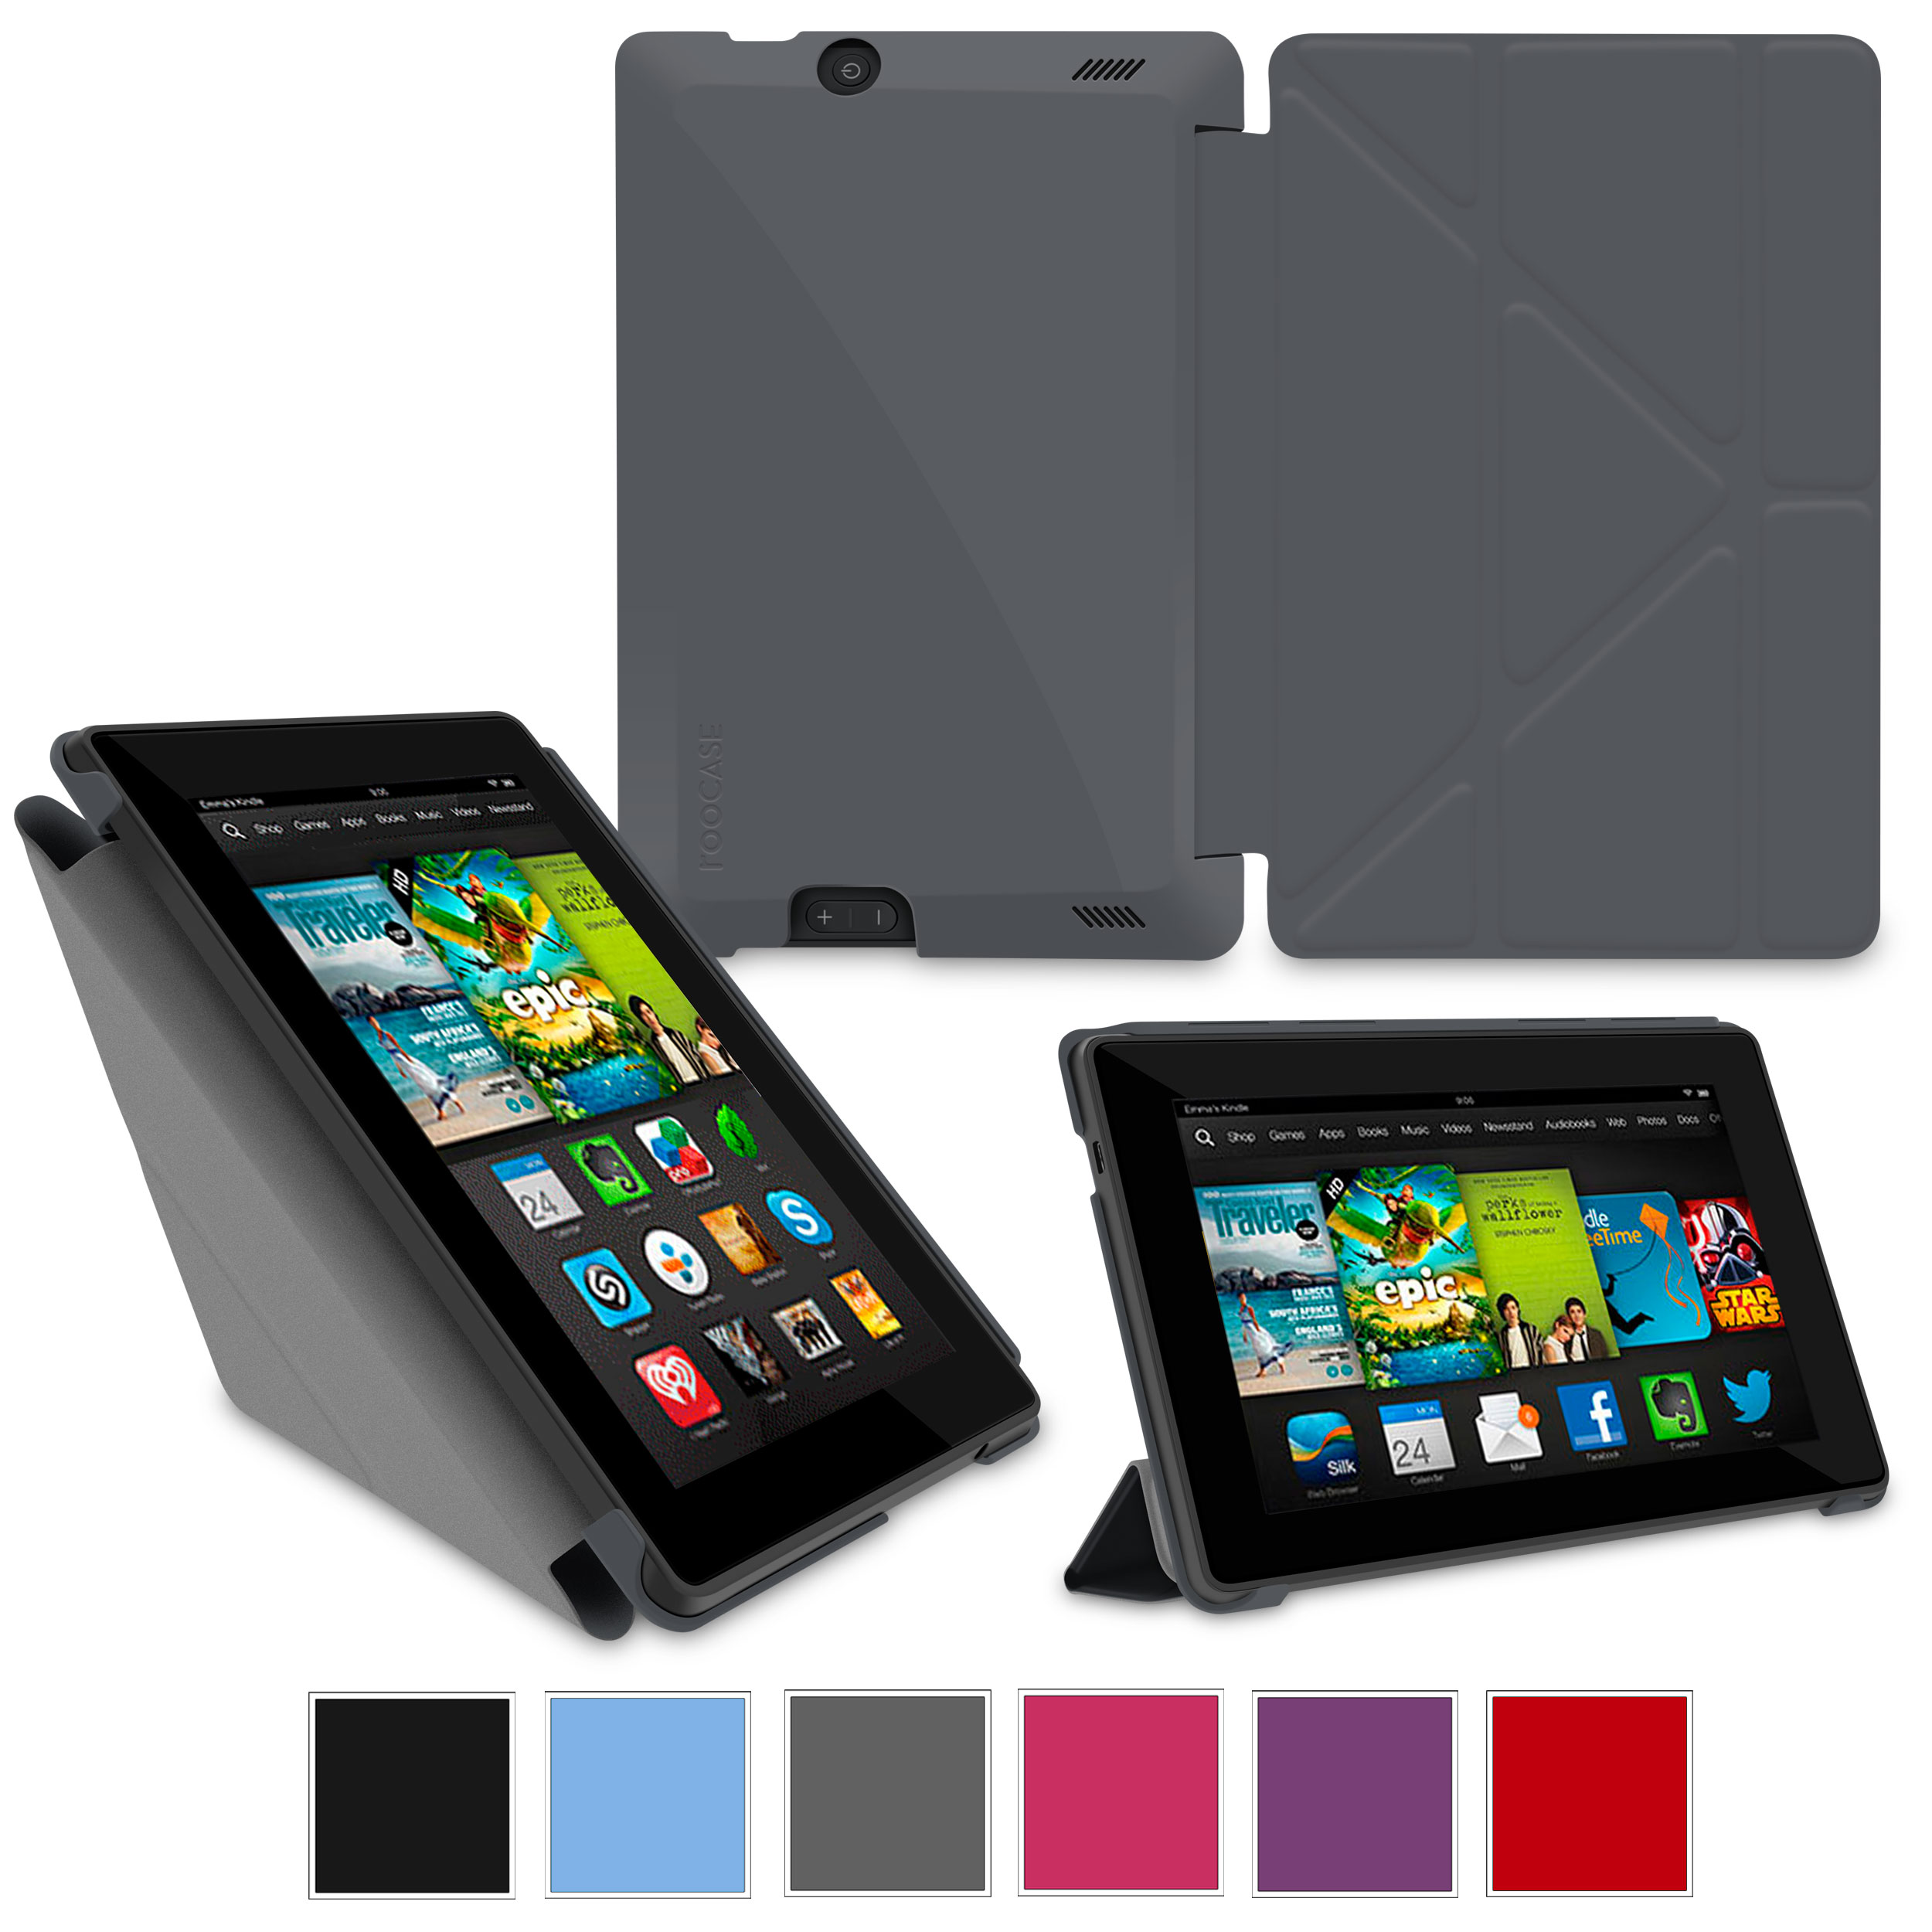 "rooCASE Amazon Kindle Fire HD 7 Case - (2013 Previous Generation) Origami Slim Shell 7-Inch 7"" Cover with Landscape, Portrait, Typing Stand - GRAY"